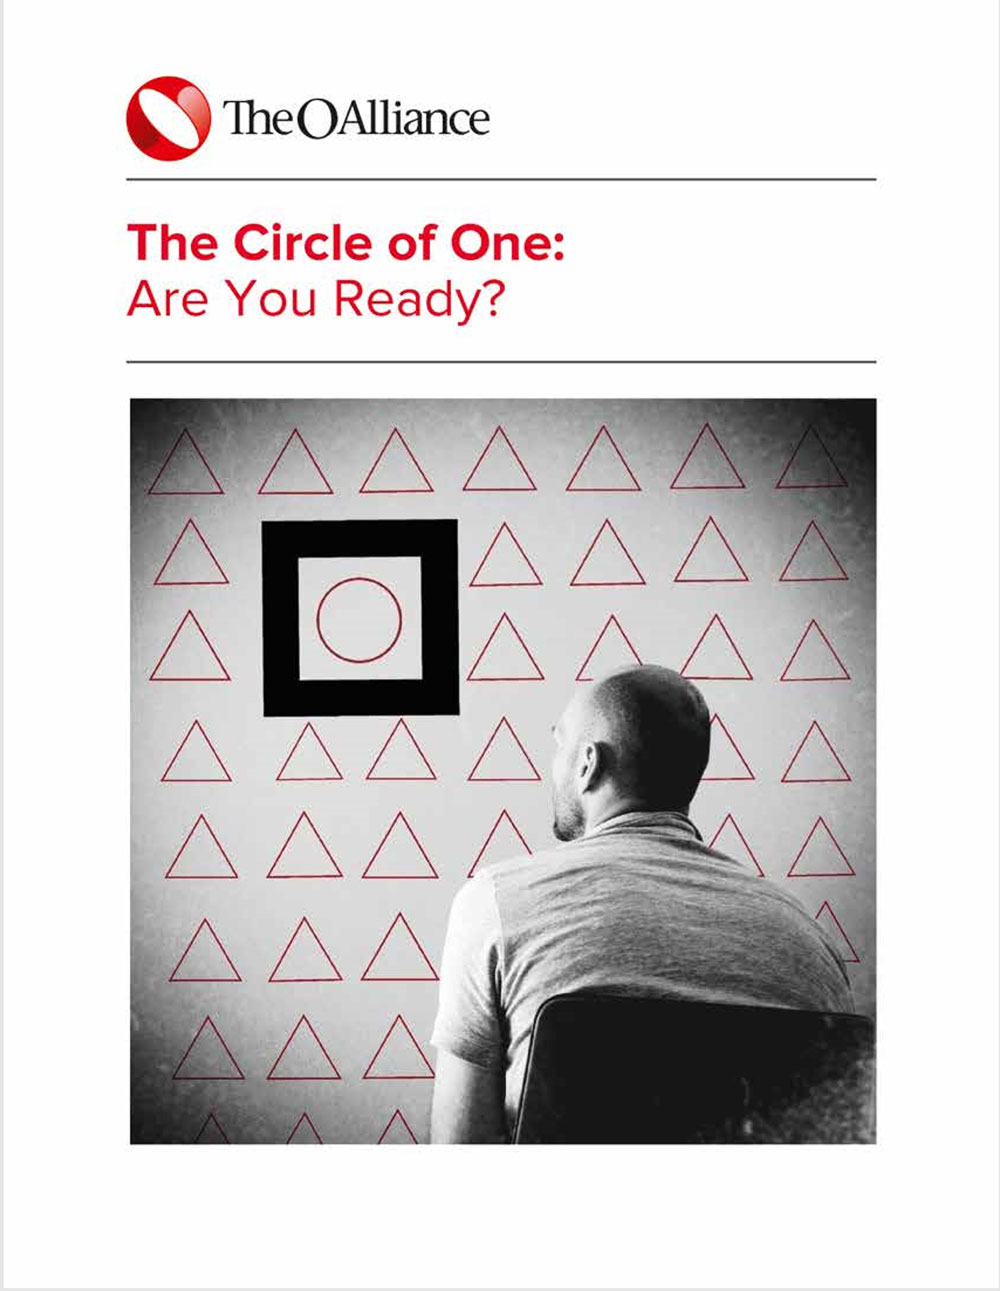 the circle of one: are you ready? - May 1, 2015